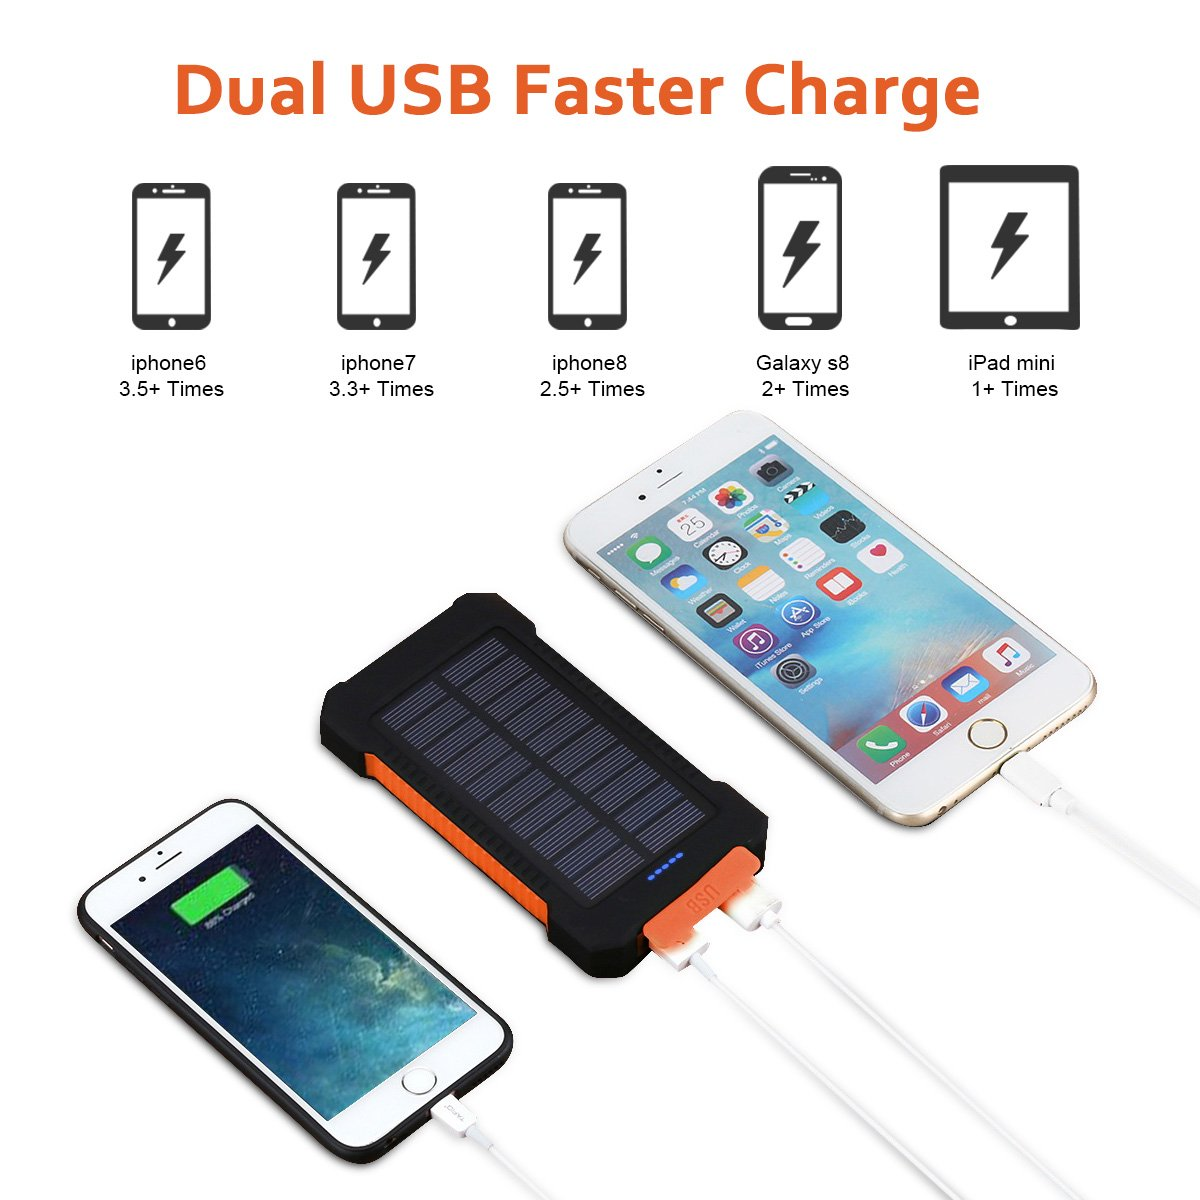 FLOUREON 10,000mAh Solar charger Power Bank Portable Phone Charger External Battery Charger with Dual 2.1A USB LED Flashlight Output Charging for iPhone 8/ 8 Plus/ X/ 7/ 6s, Samsung Galaxy S8/ S7/ S6 and More (Orange)